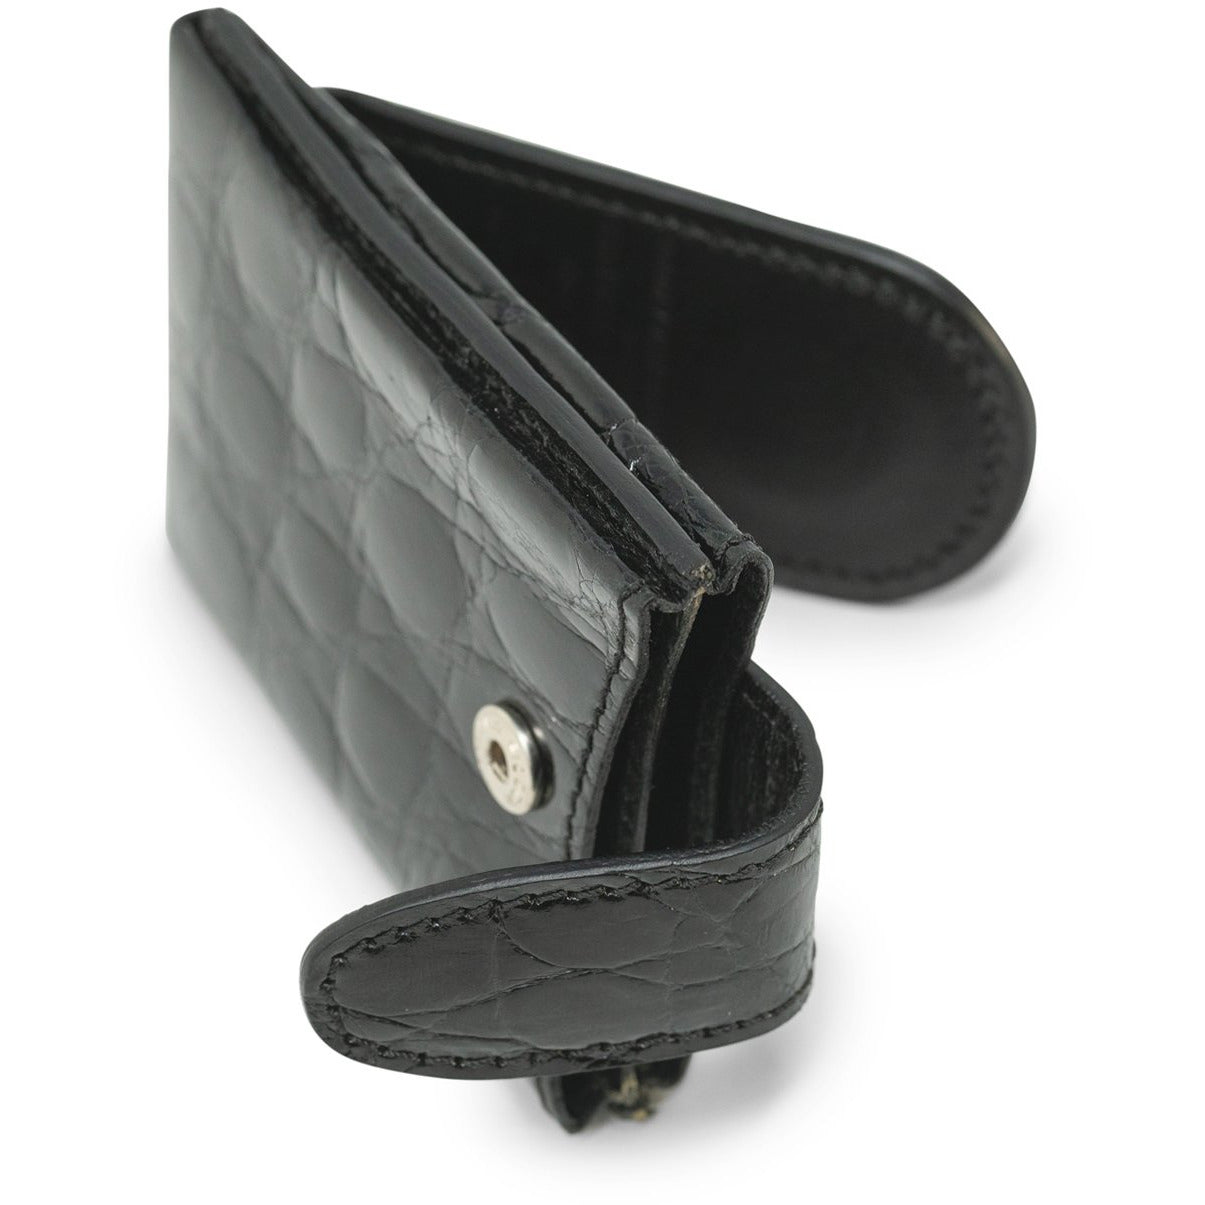 Money Clips and Card Holder in Black Crocodile - Jennifer Tattanelli